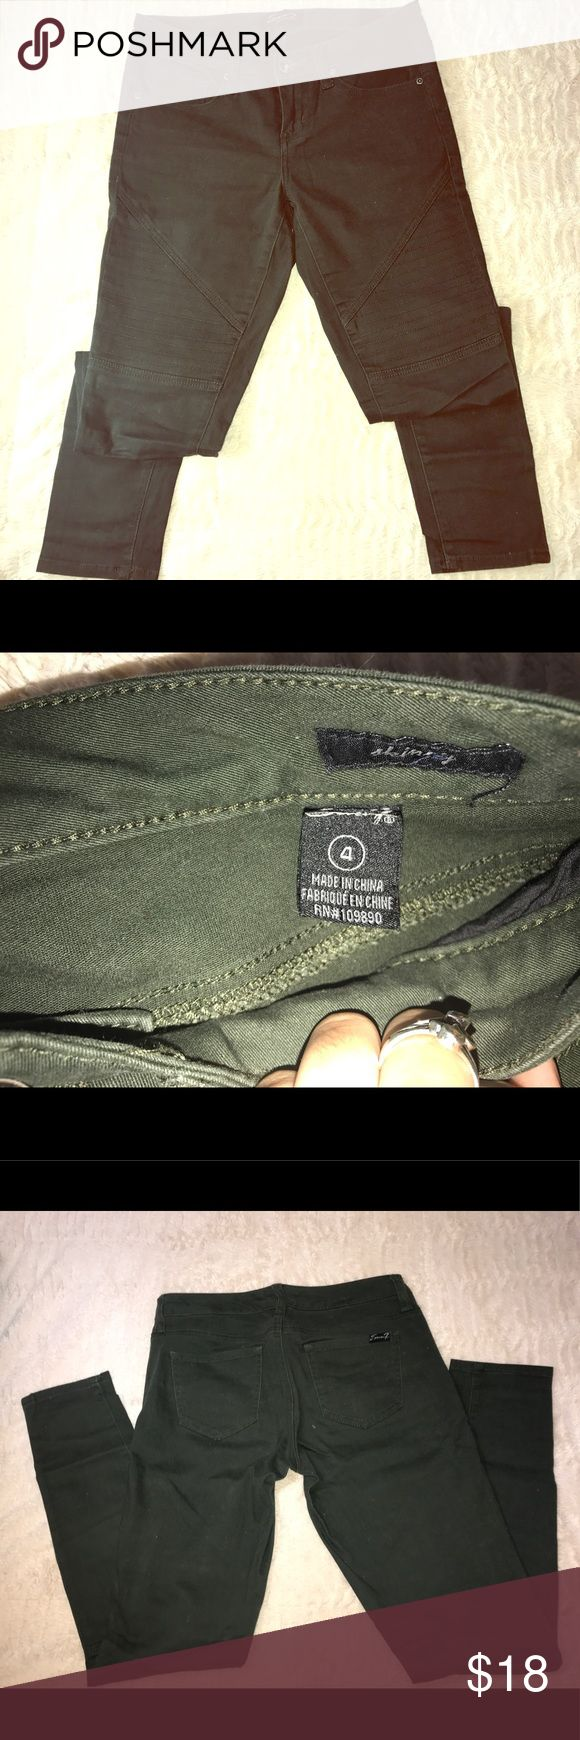 Military Green pants Military green pants excellent condition . Worn once only . These fit excellently good, super comfy :) medium rise Seven7 Pants Leggings